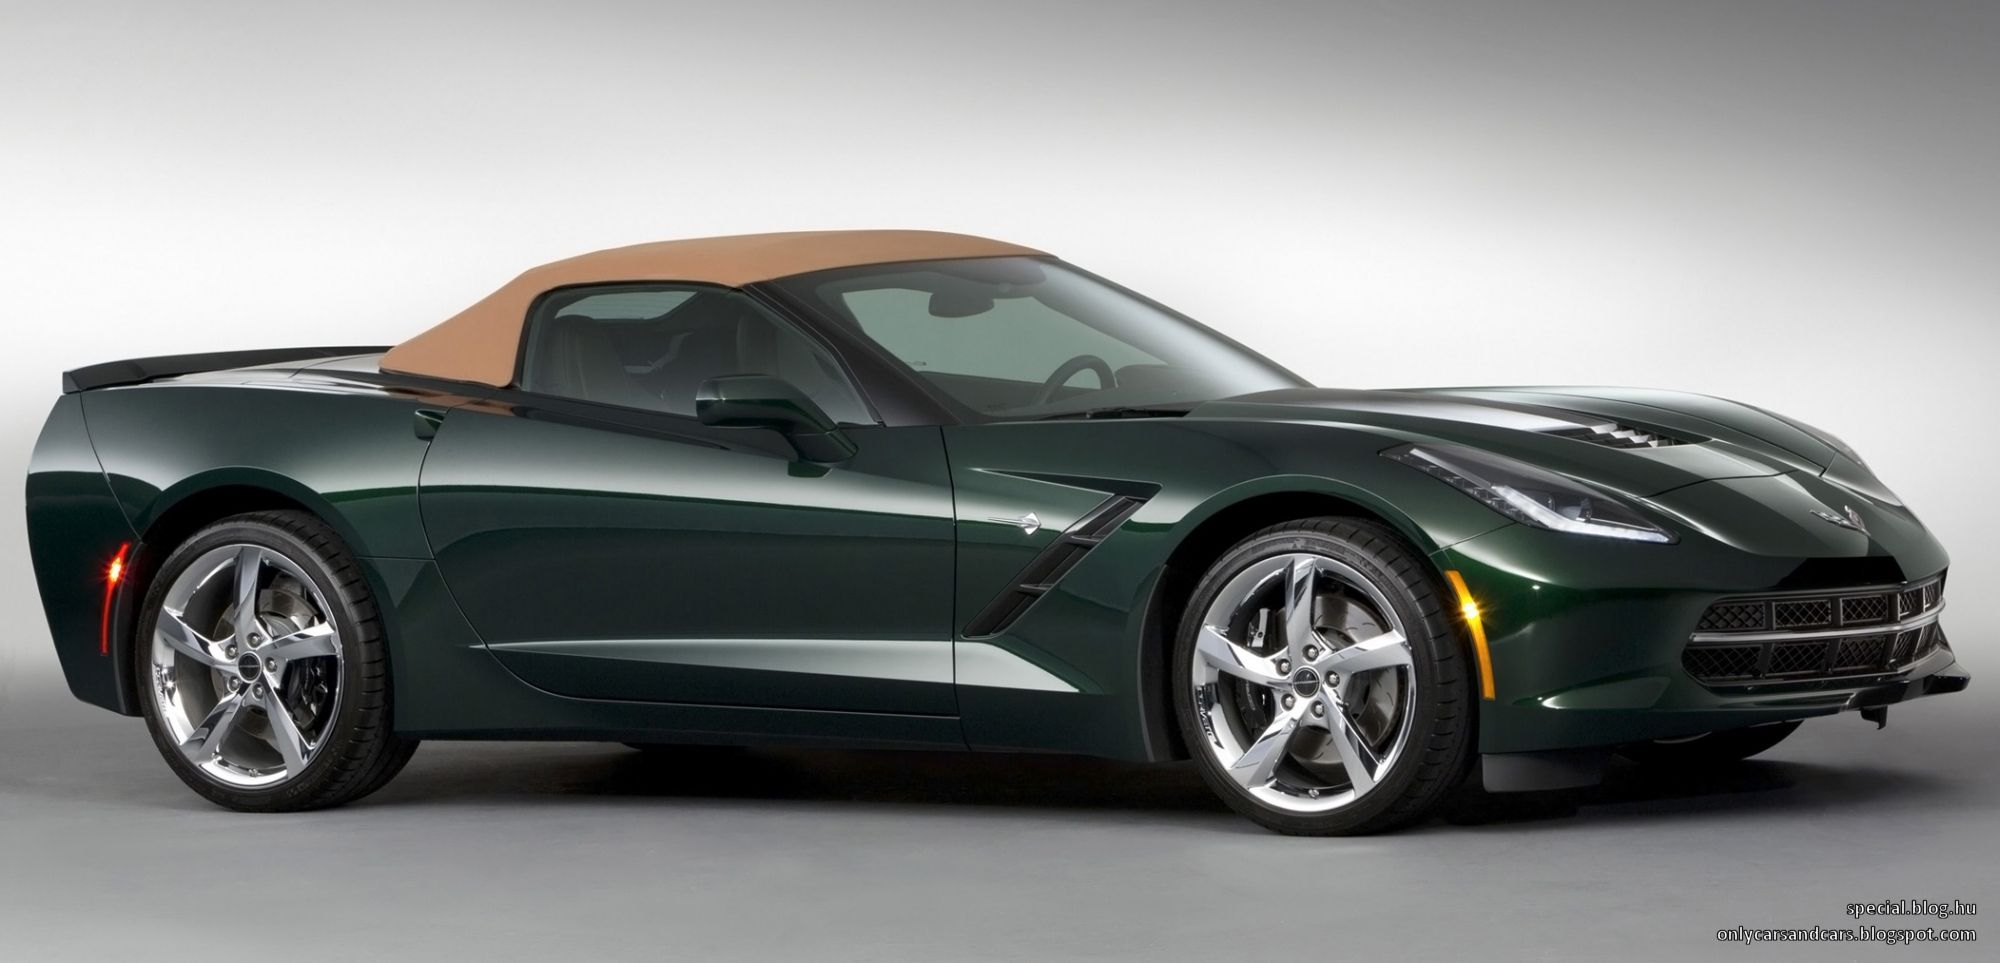 You have read this article chevrolet convertible corvette green limited limited edition premiere edition stingray v8 with the title